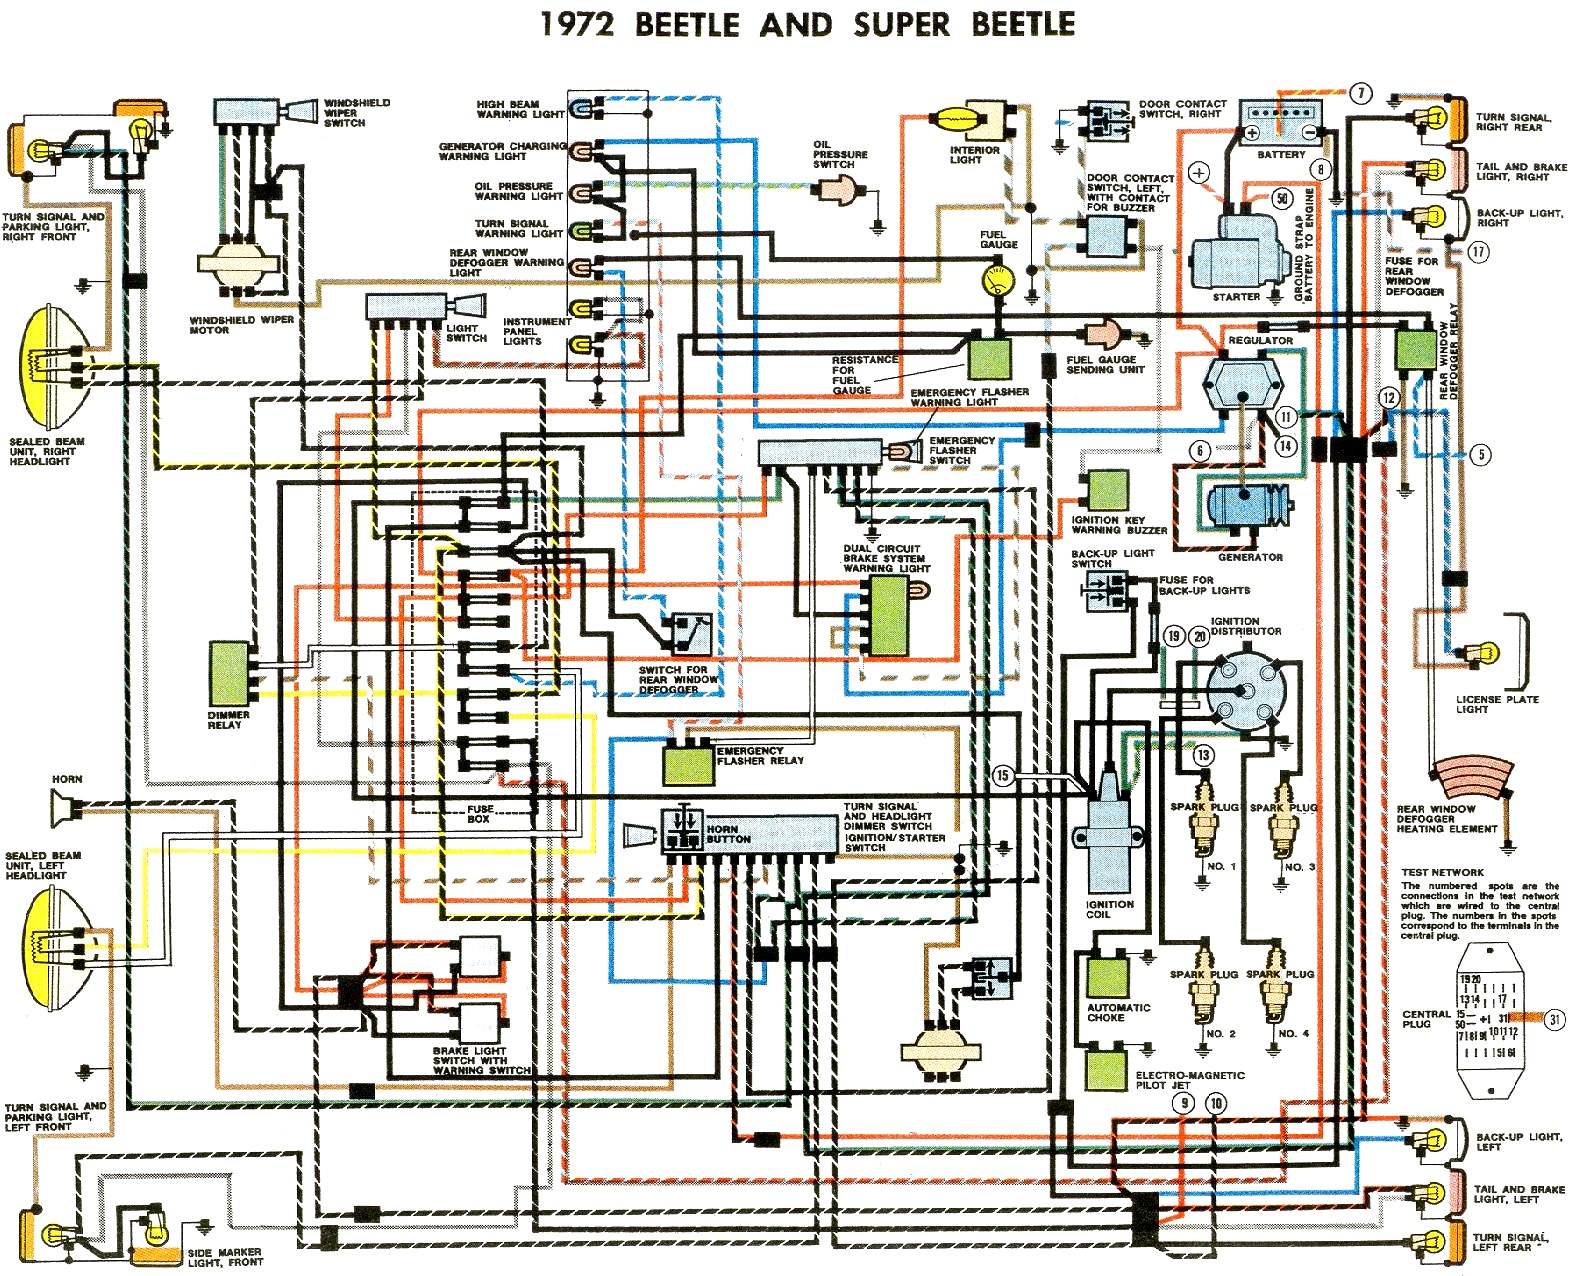 bug_72 1972 beetle wiring diagram thegoldenbug com 1972 beetle wiring diagram at mifinder.co